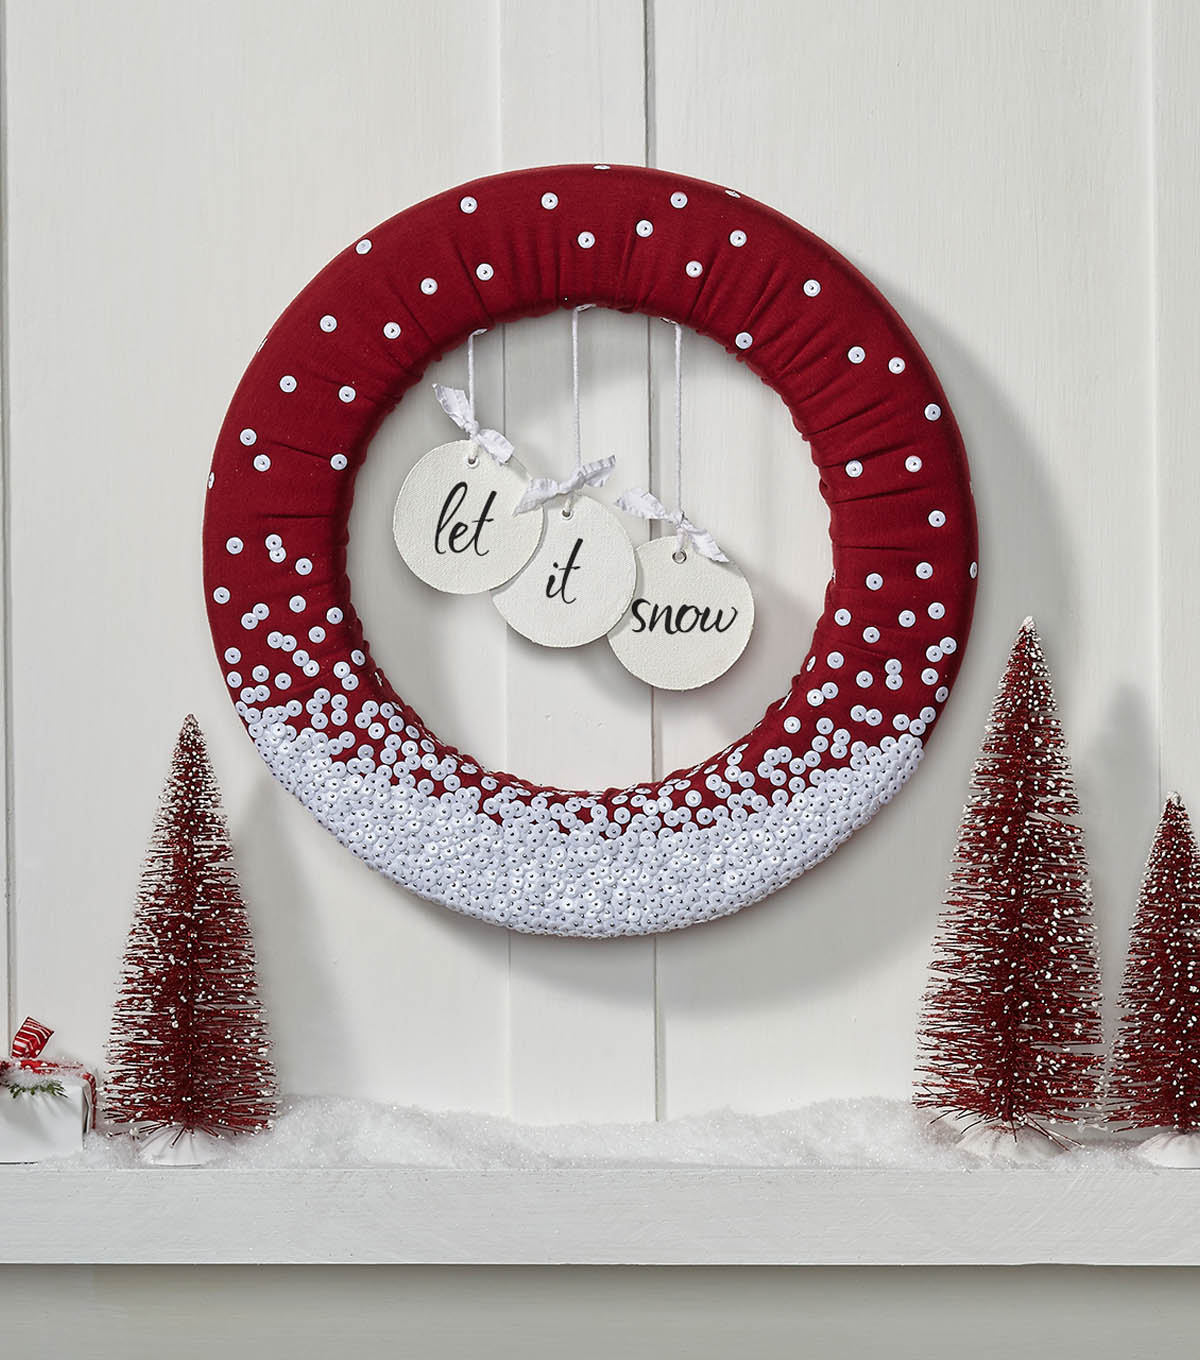 How to Make a Christmas Wreath - Christmas Decorations | JOANN